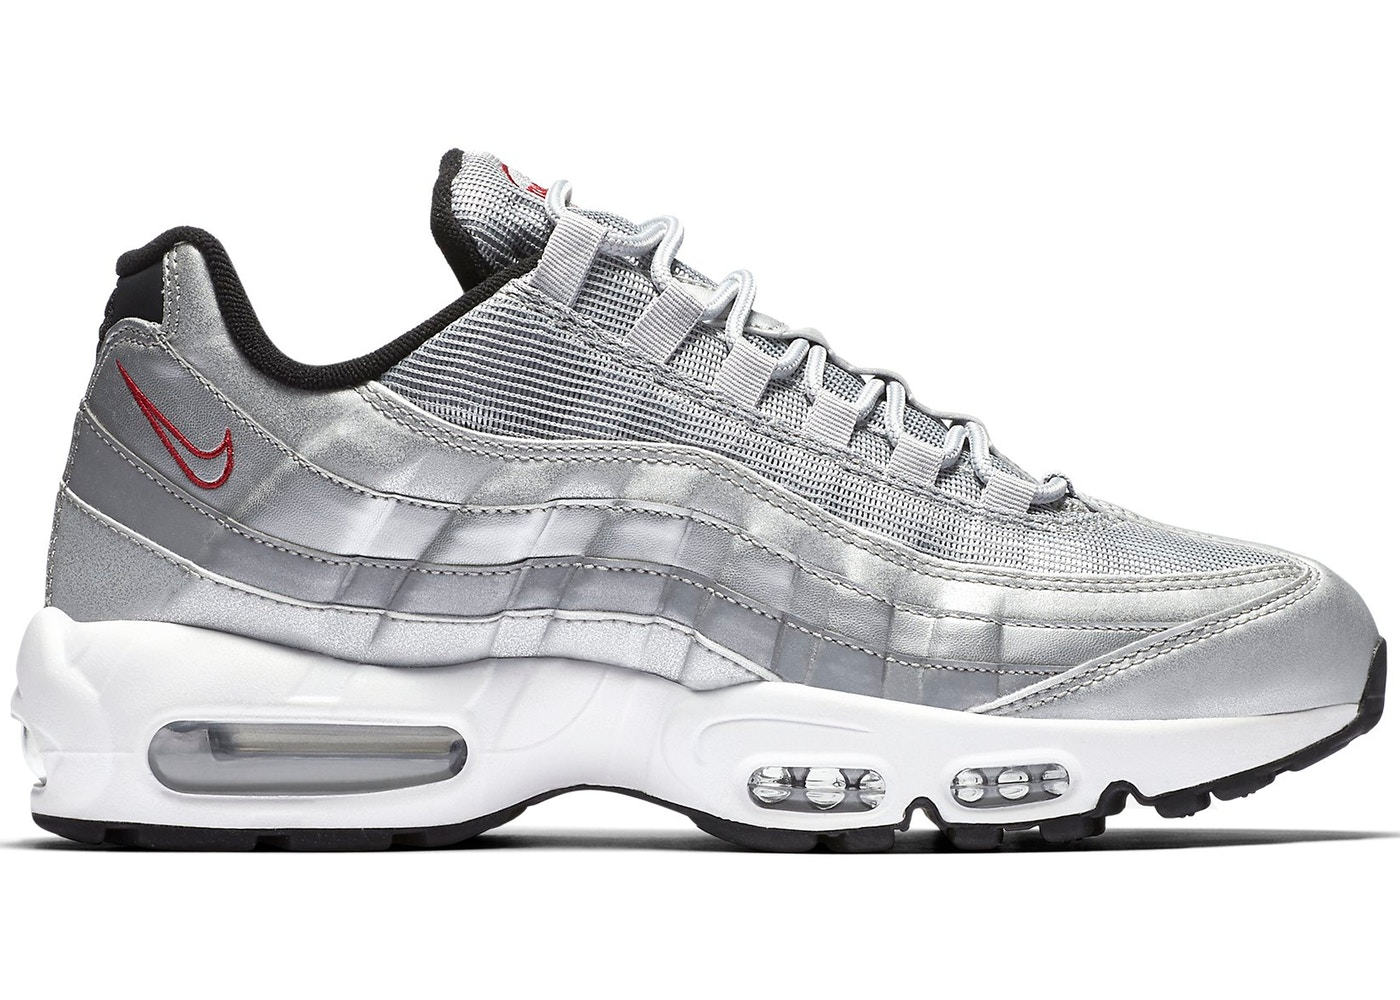 1e4869598e Sell. or Ask. Size: 11. View All Bids. Air Max 95 Silver Bullet